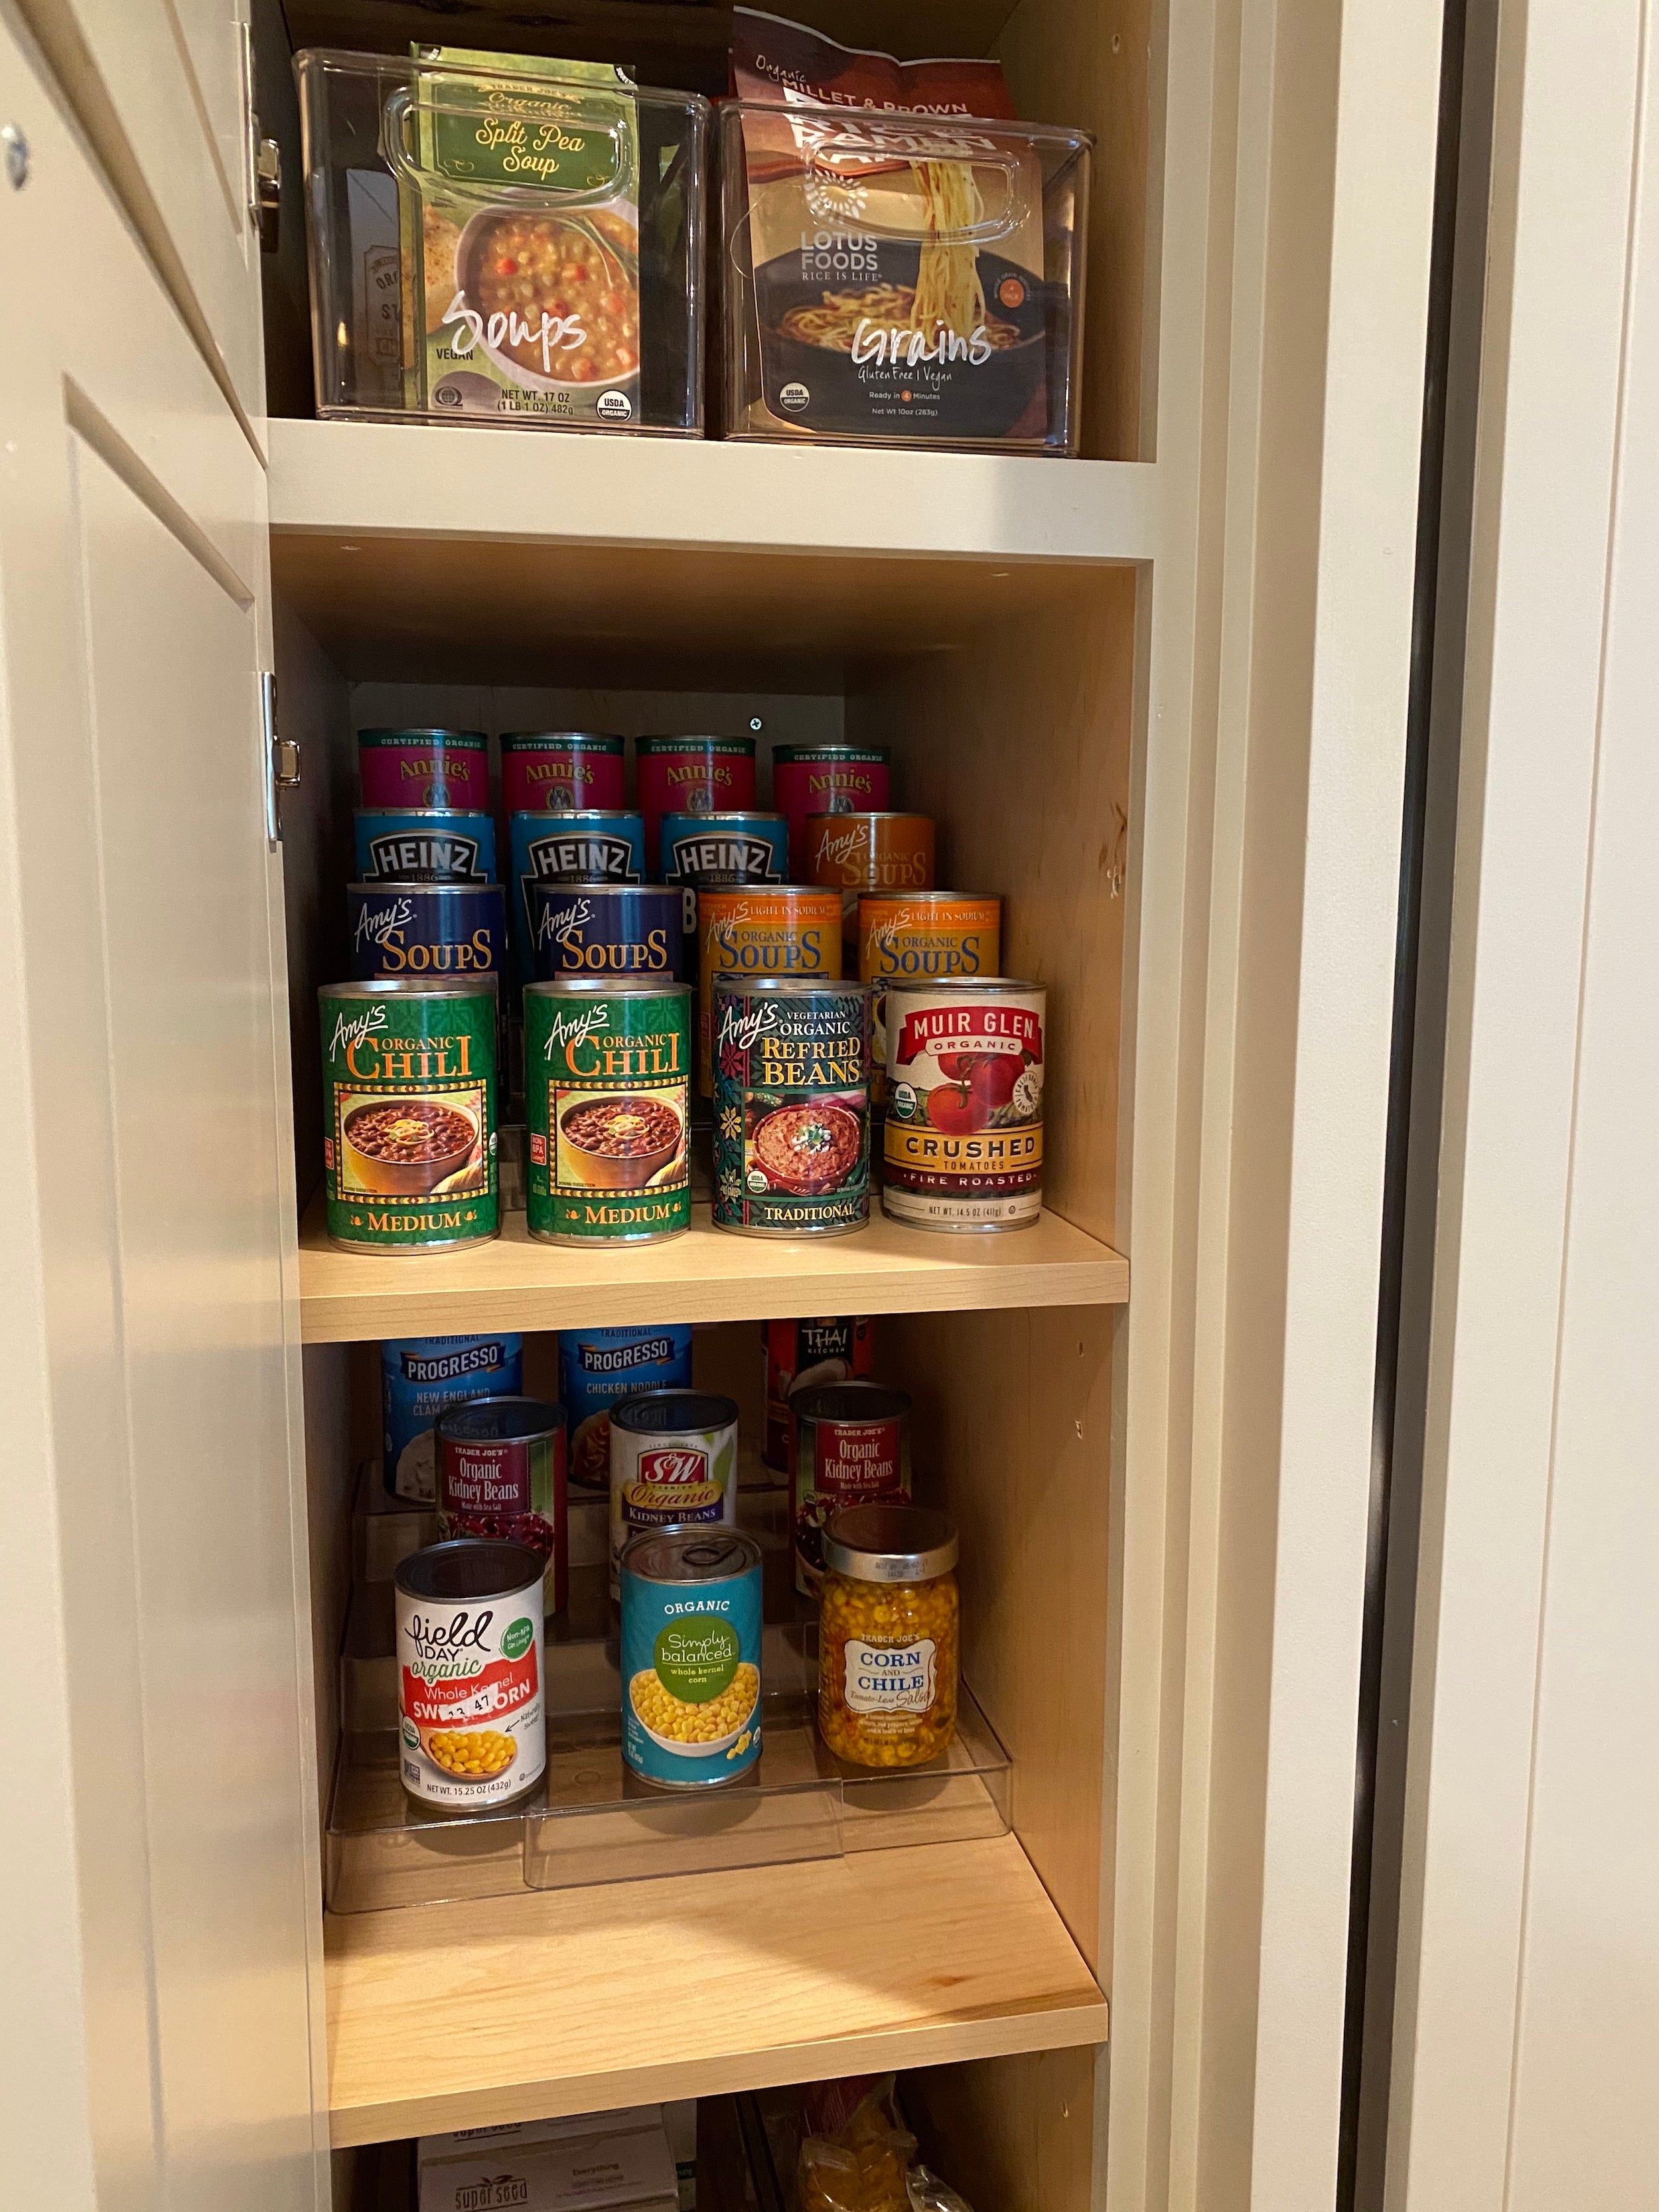 pantry shelves with cans stacked